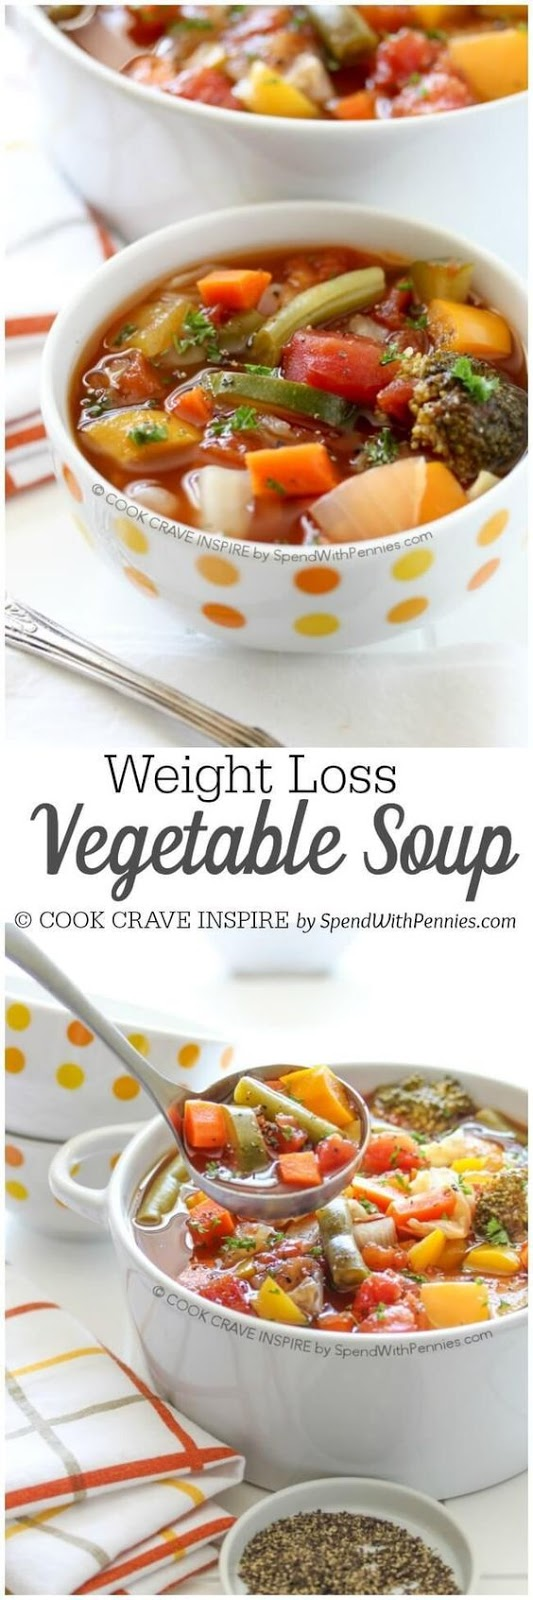 Weight Loss Vegetable Soup #SOUP #HEALTHY #MAINCOURSE #AMERICAN